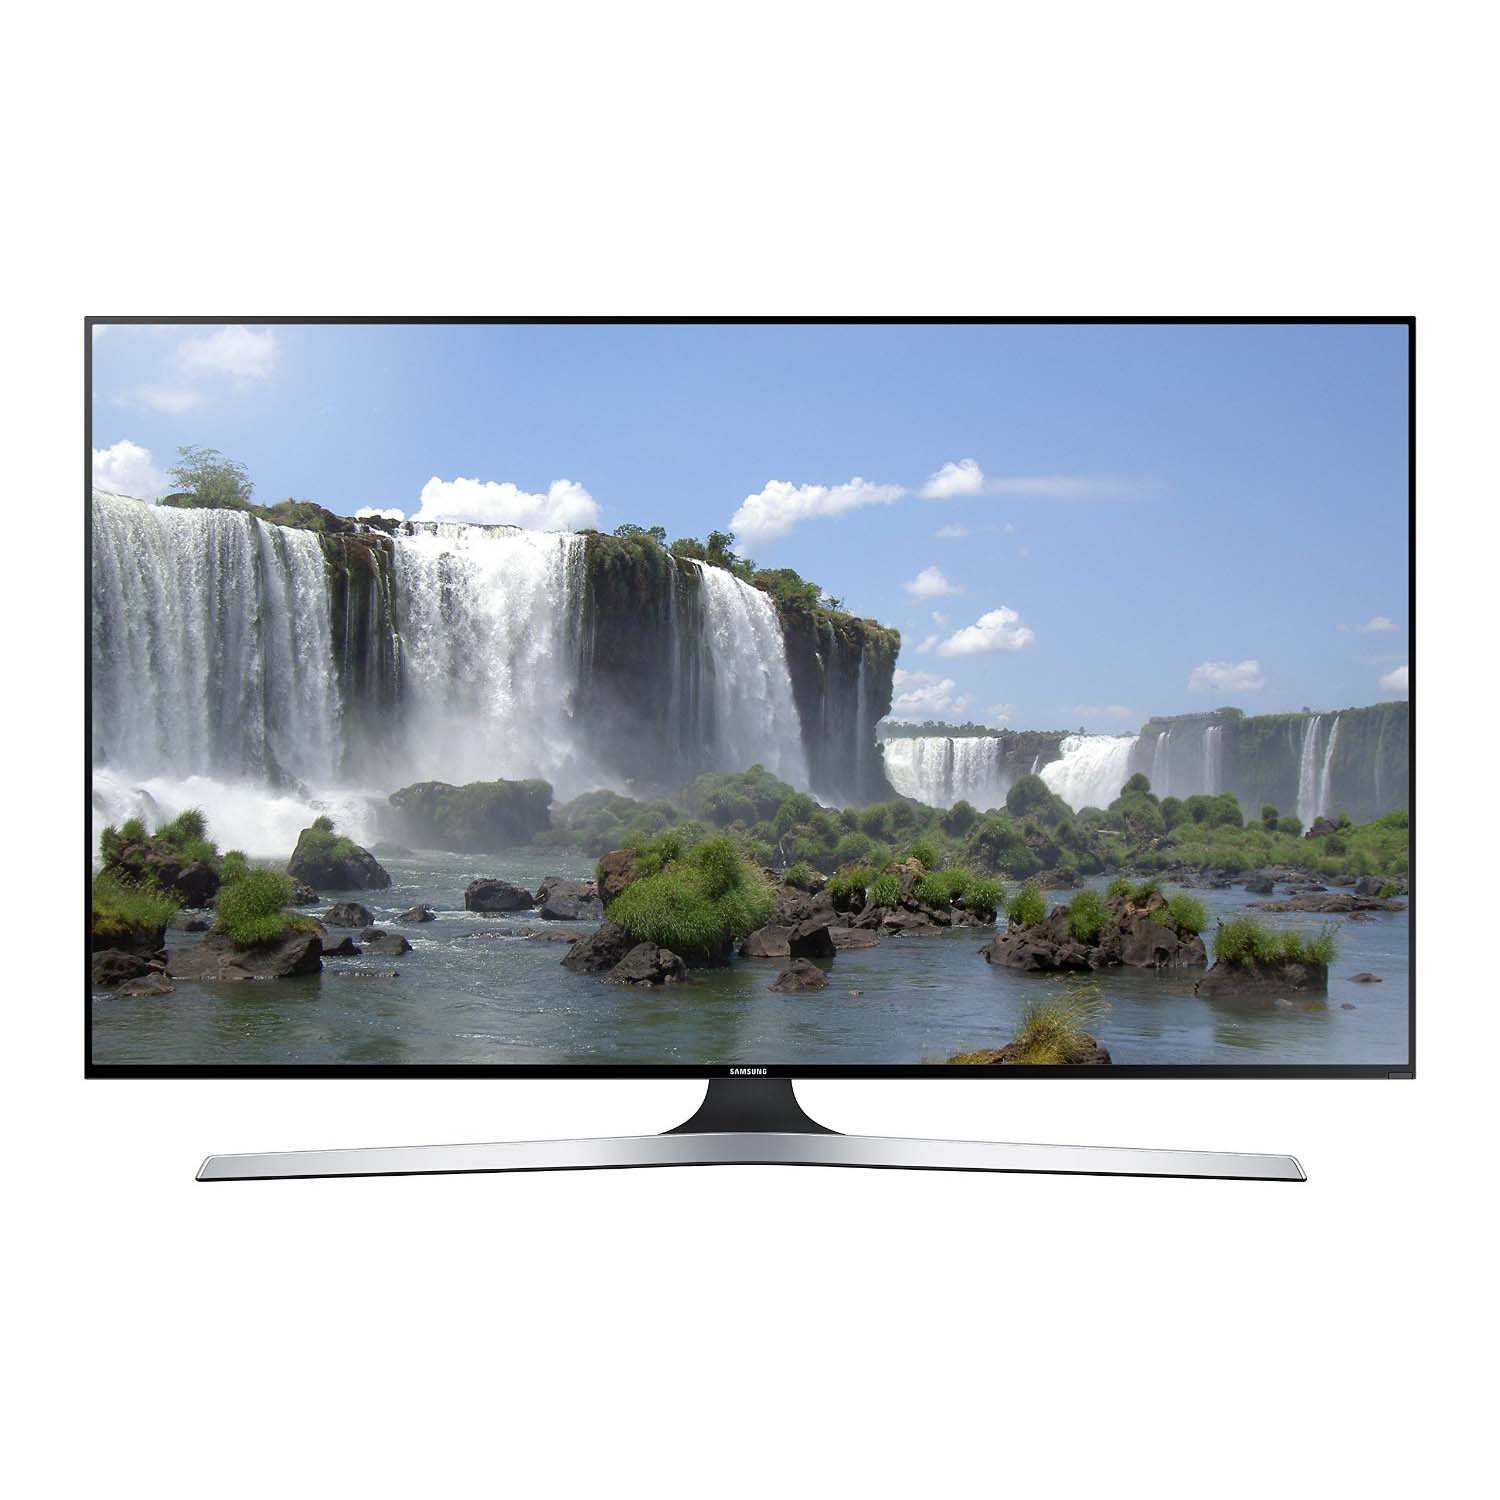 Samsung UN65J6300 65-Inch 1080p Smart LED TV (2015 Model) *관부가세 별도*